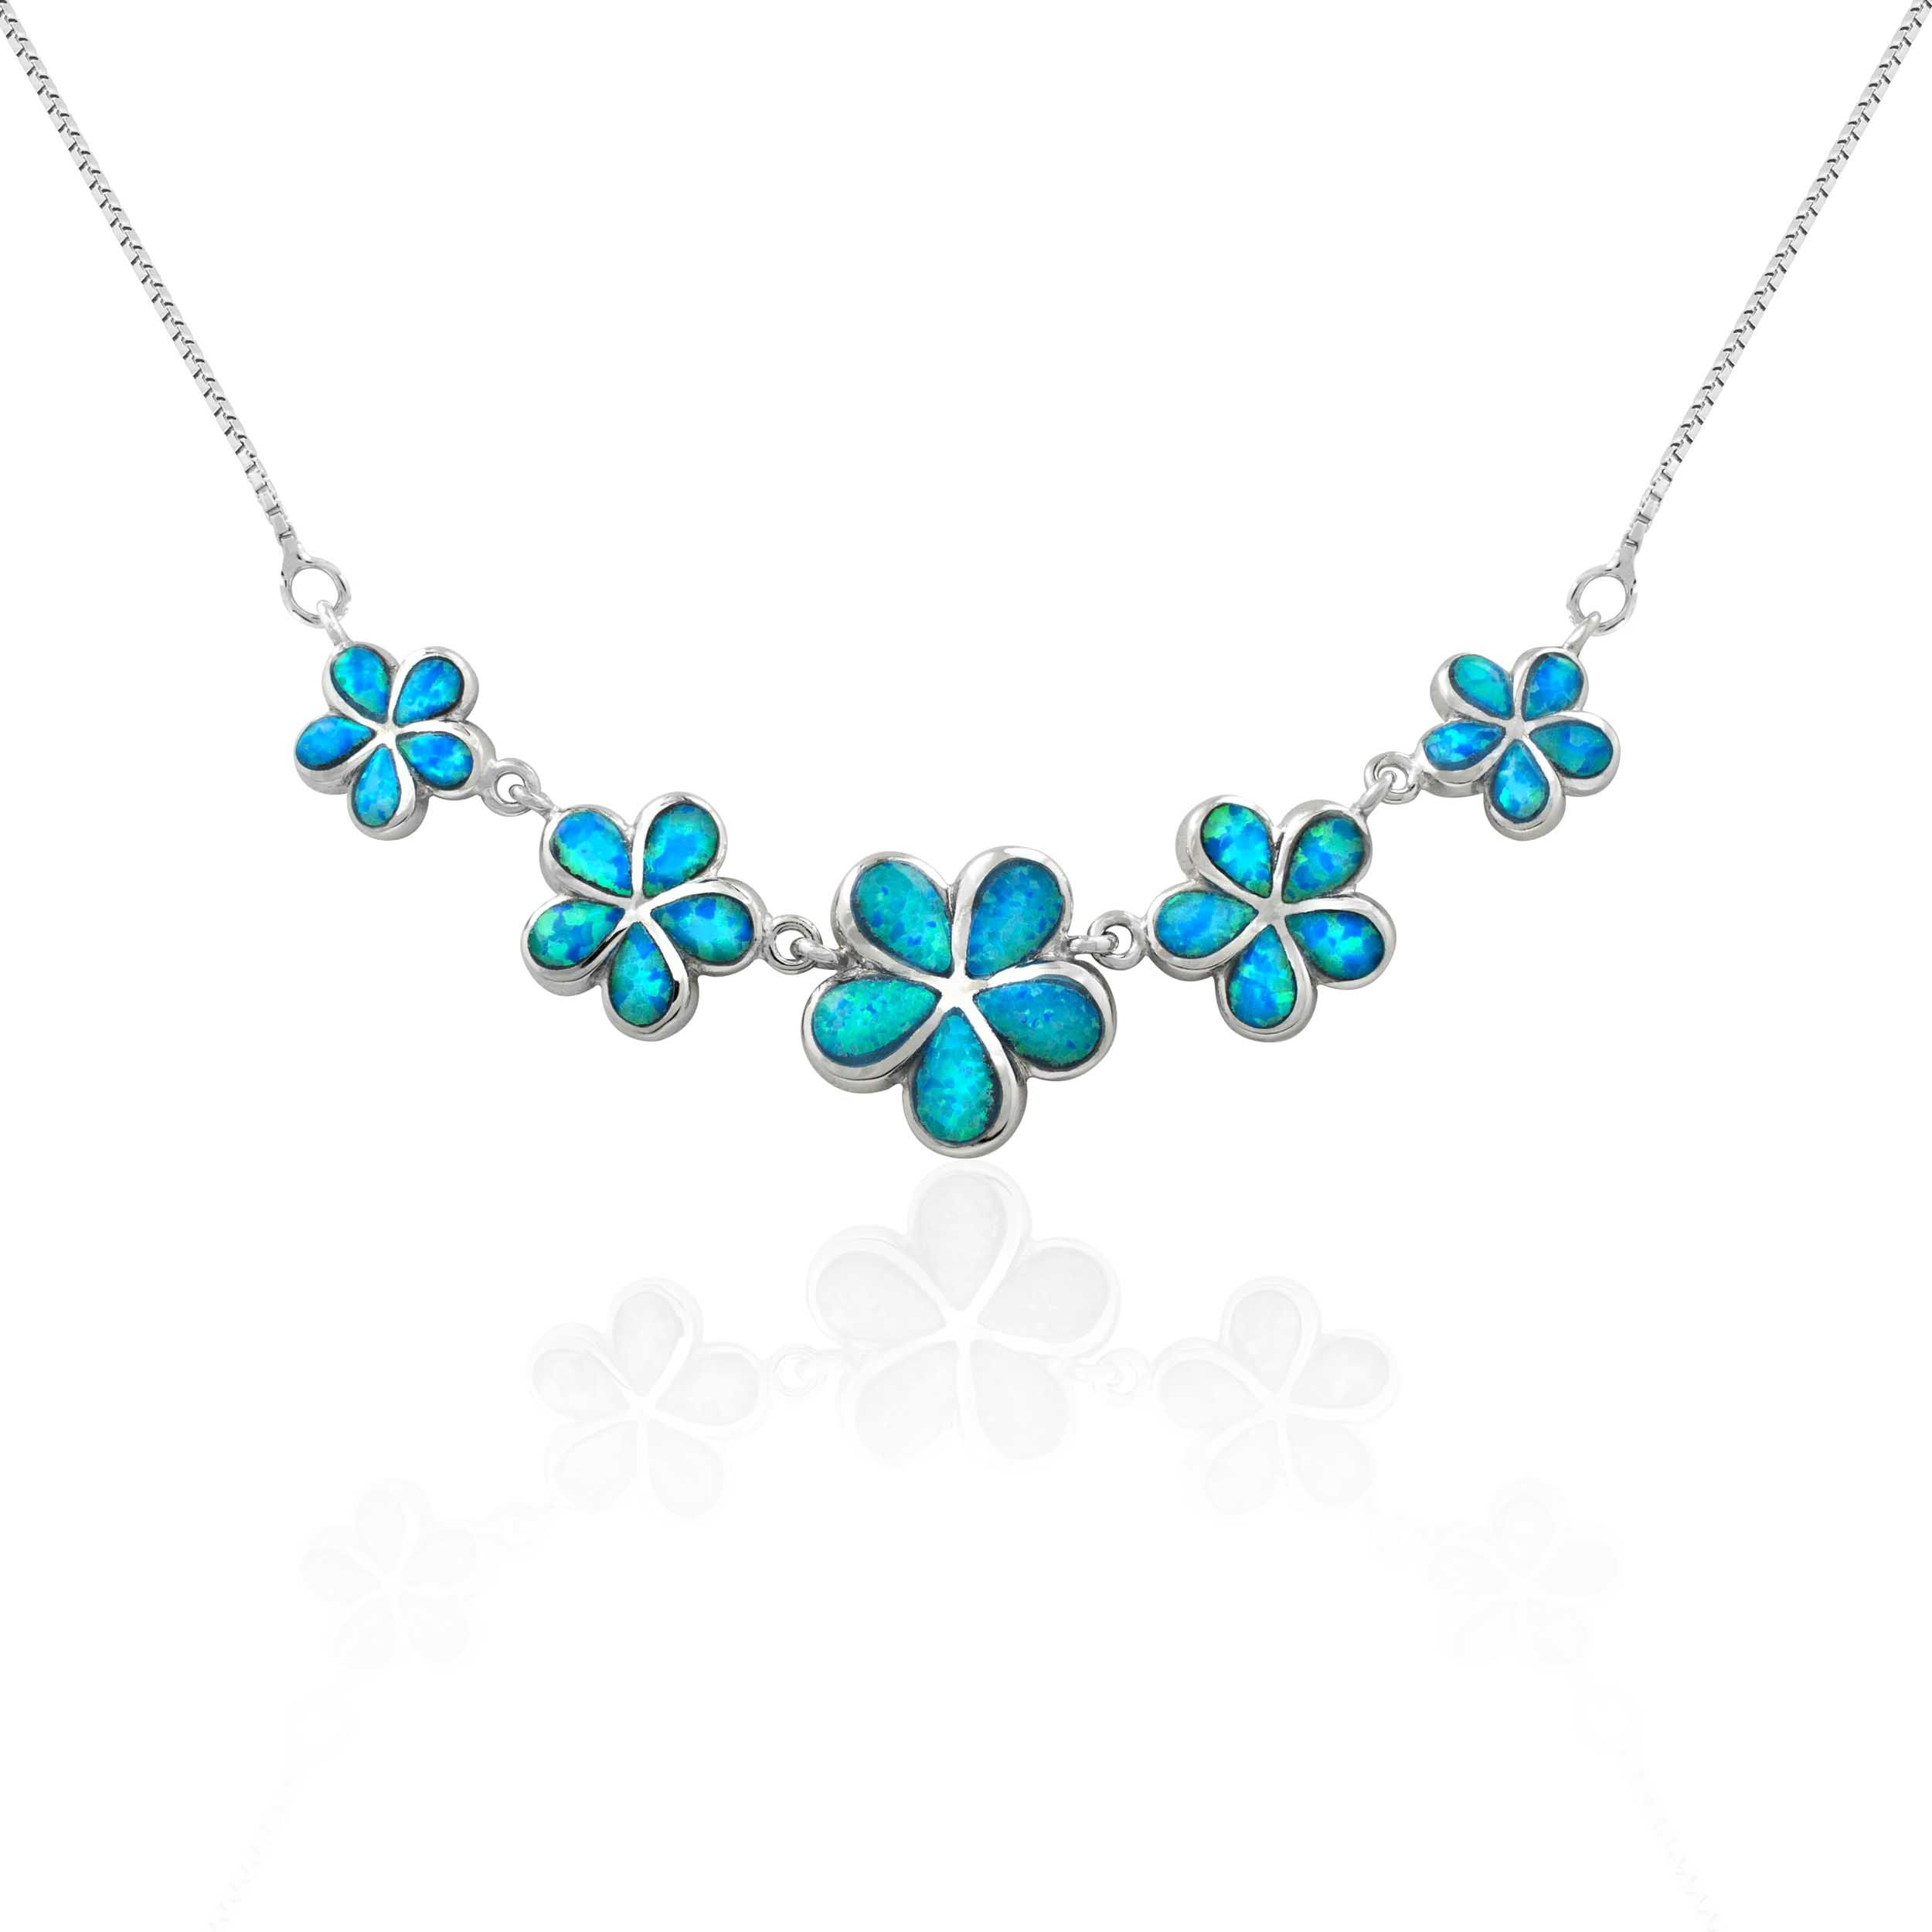 Sterling Silver Five Plumeria Flower Necklace With Blue Opal